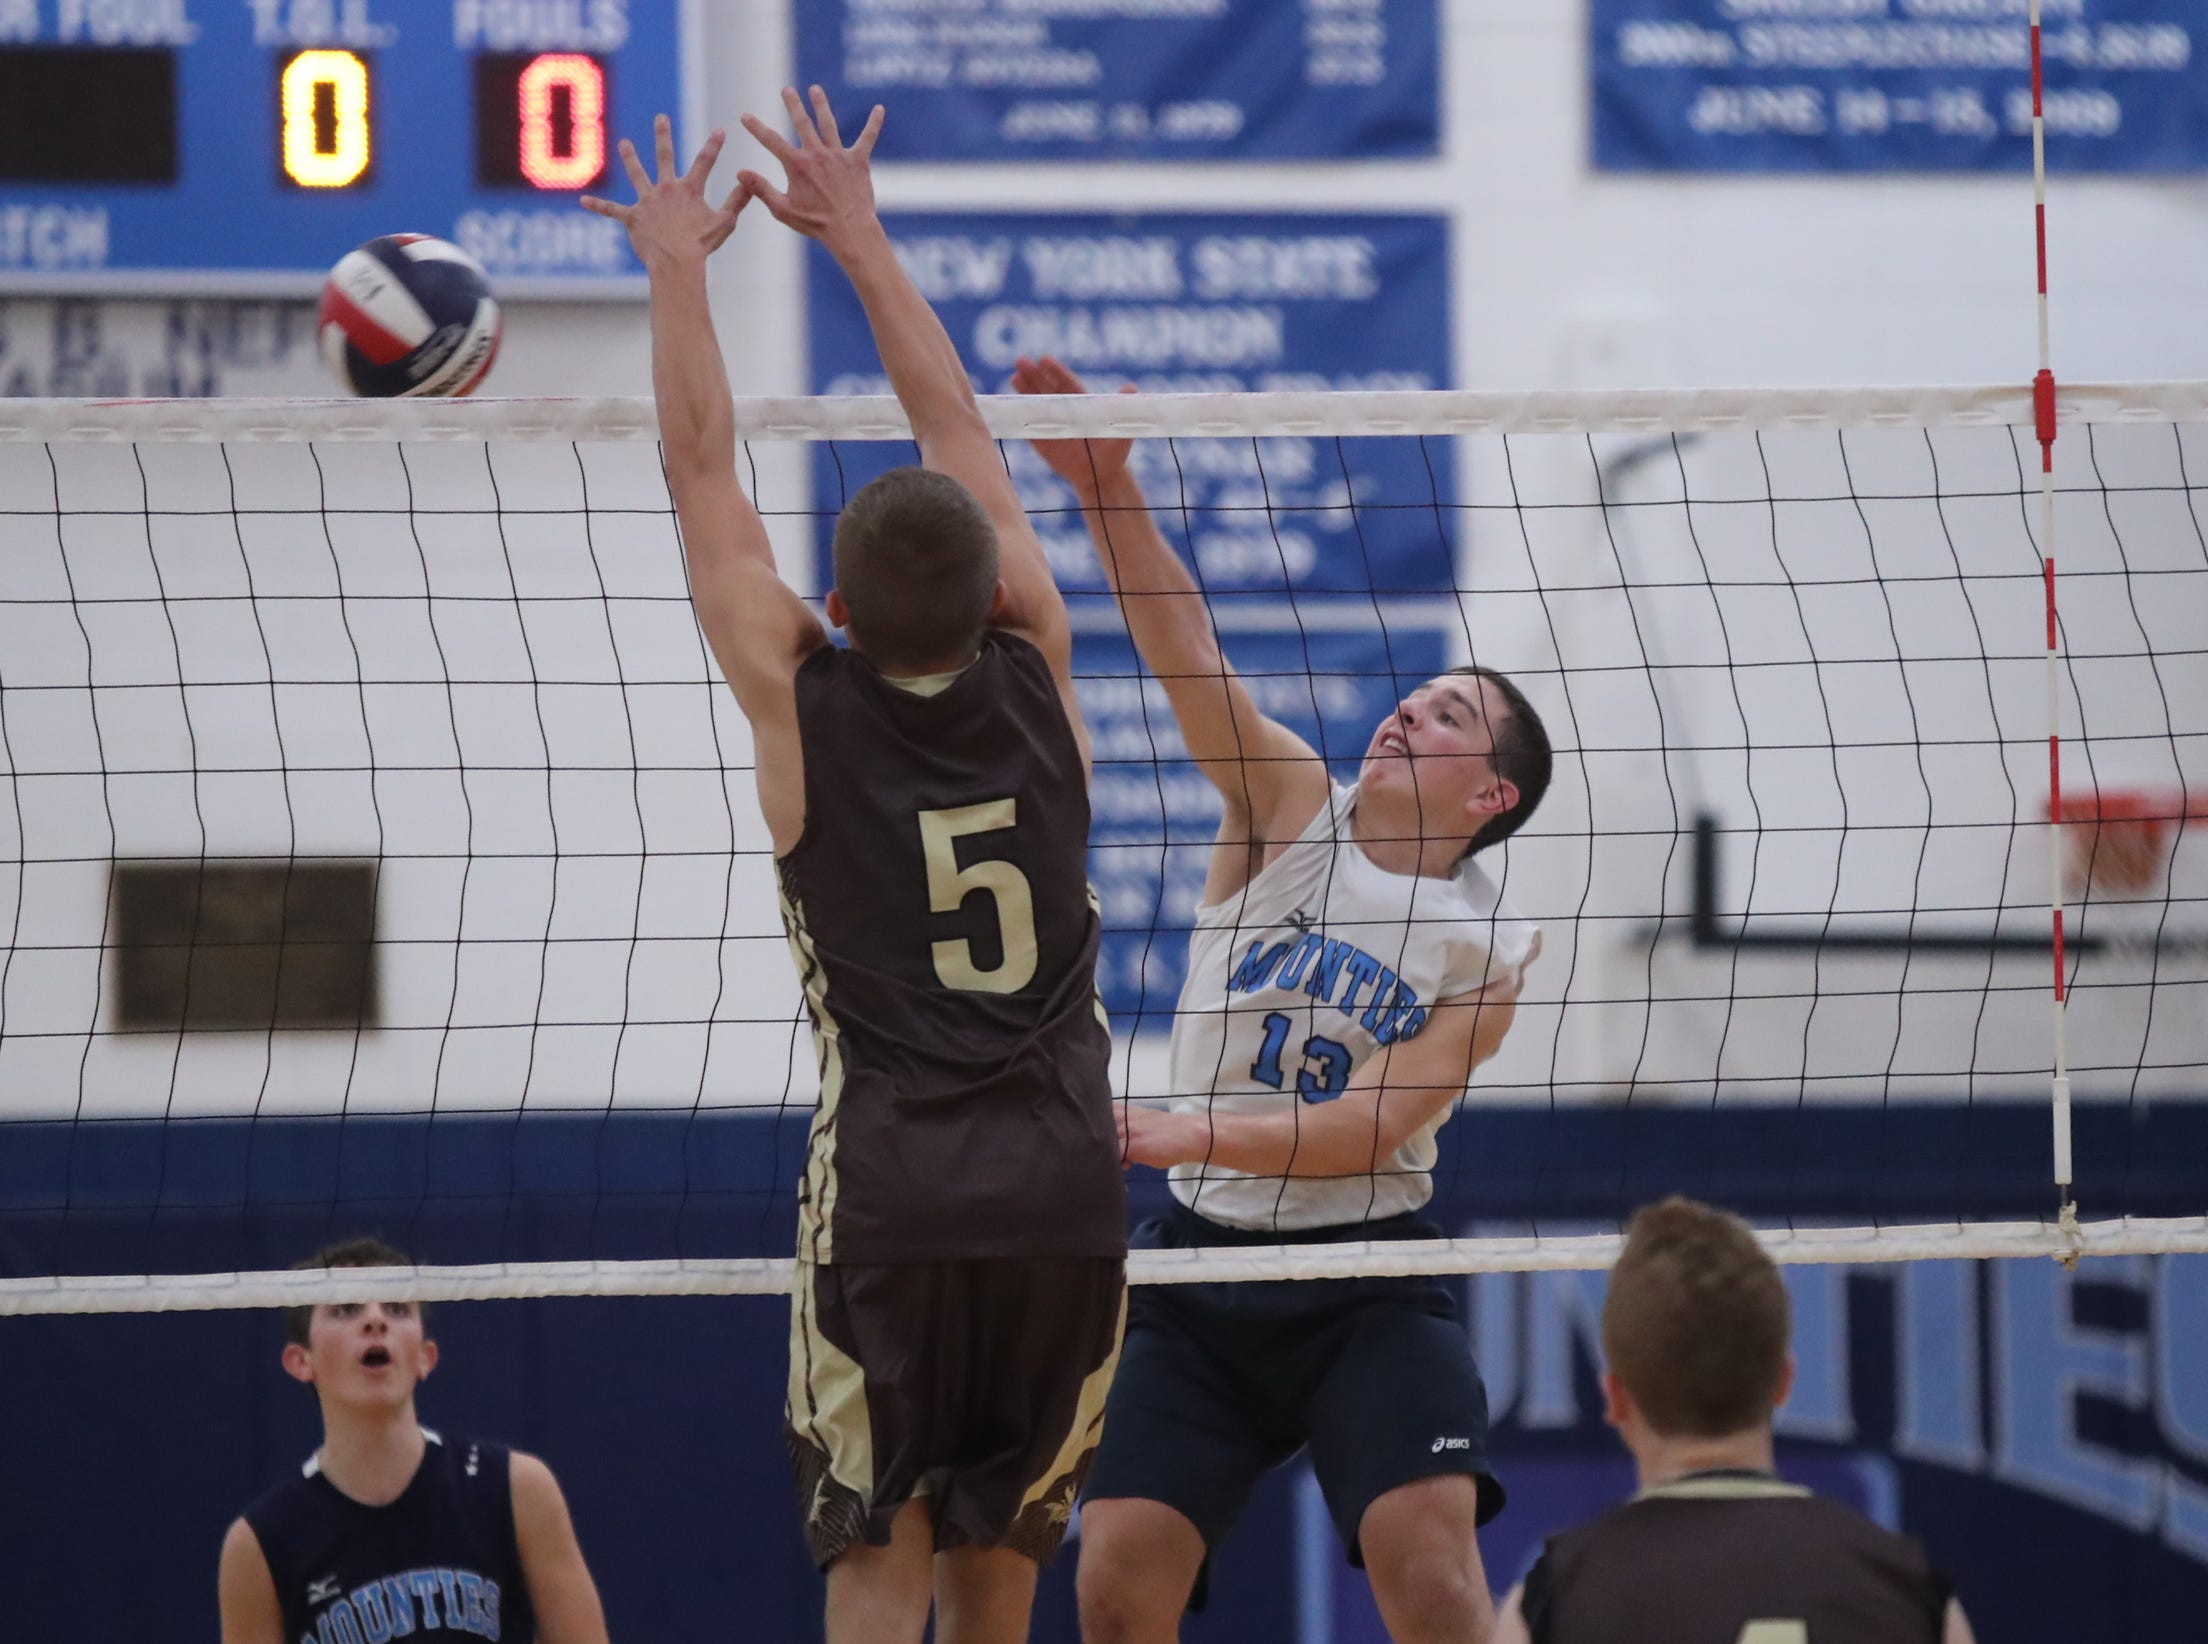 Suffern's Will Kempf (13) hits a shot as Clarkstown South's Trevor Montana (5) attempts a block during their 3-1 win in boys volleyball action at Suffern High School in Suffern on Thursday, October 11, 2018.